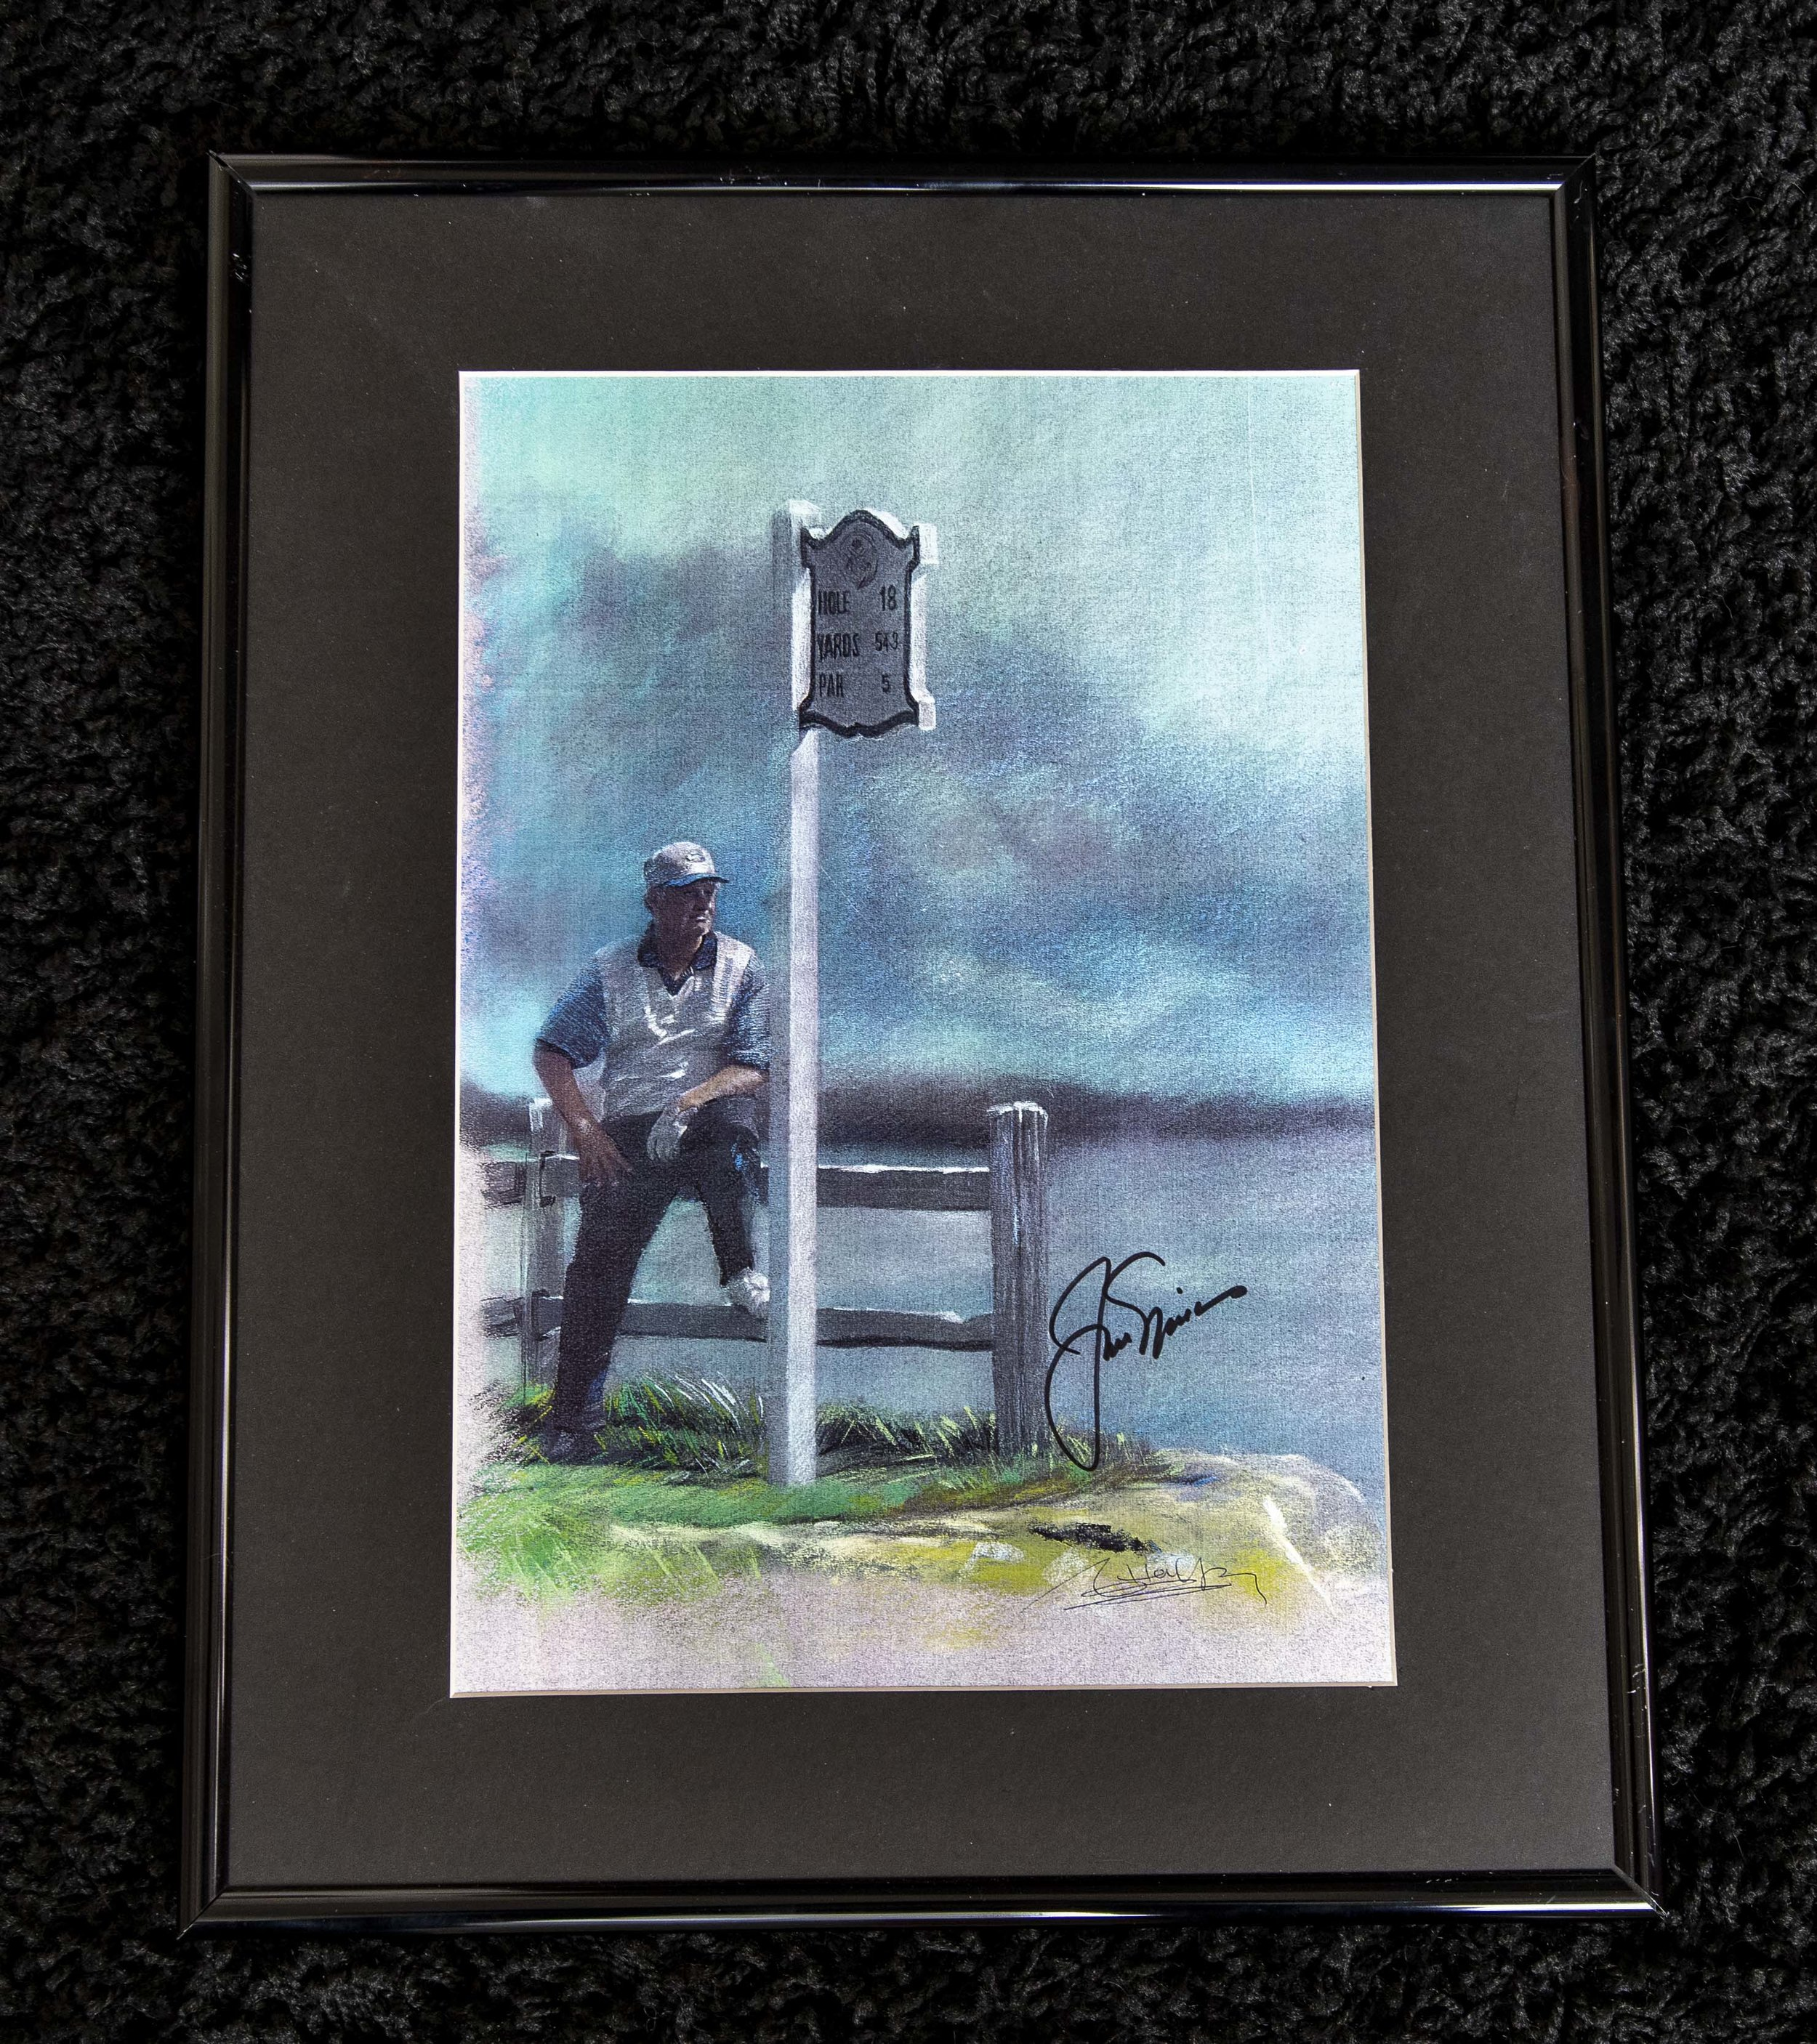 Jack Nicklaus Signed Painting Framed